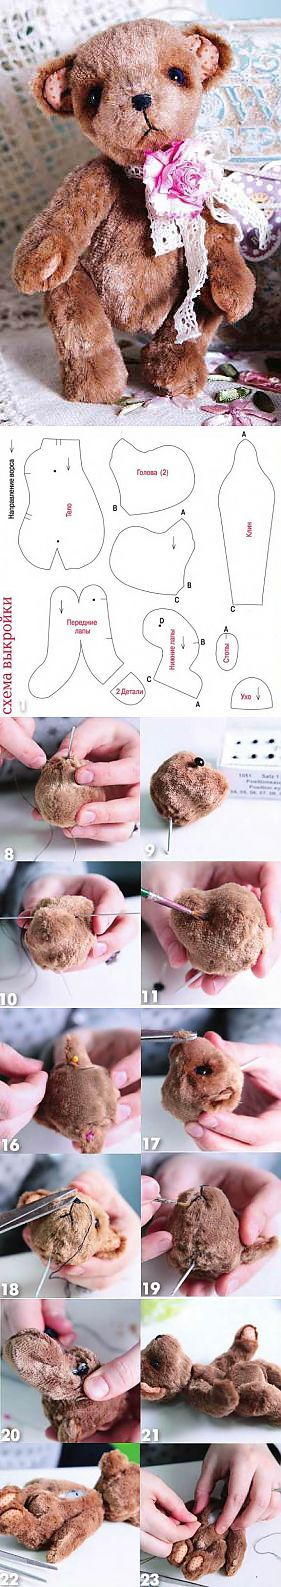 Мишка Тедди своими руками = teddy bear animal Handmade squirrel  Cuddly Toy, How to Make a Toy Animal Plushie Tutorial Plushies Tutorial , Animal Plushies, Softies & Furries Arts and Crafts, Diy Projects, Sewing Template , animals, plush, soft, toy, pattern, template, sewing, diy , crafts, kawaii, cute, sew, pattern